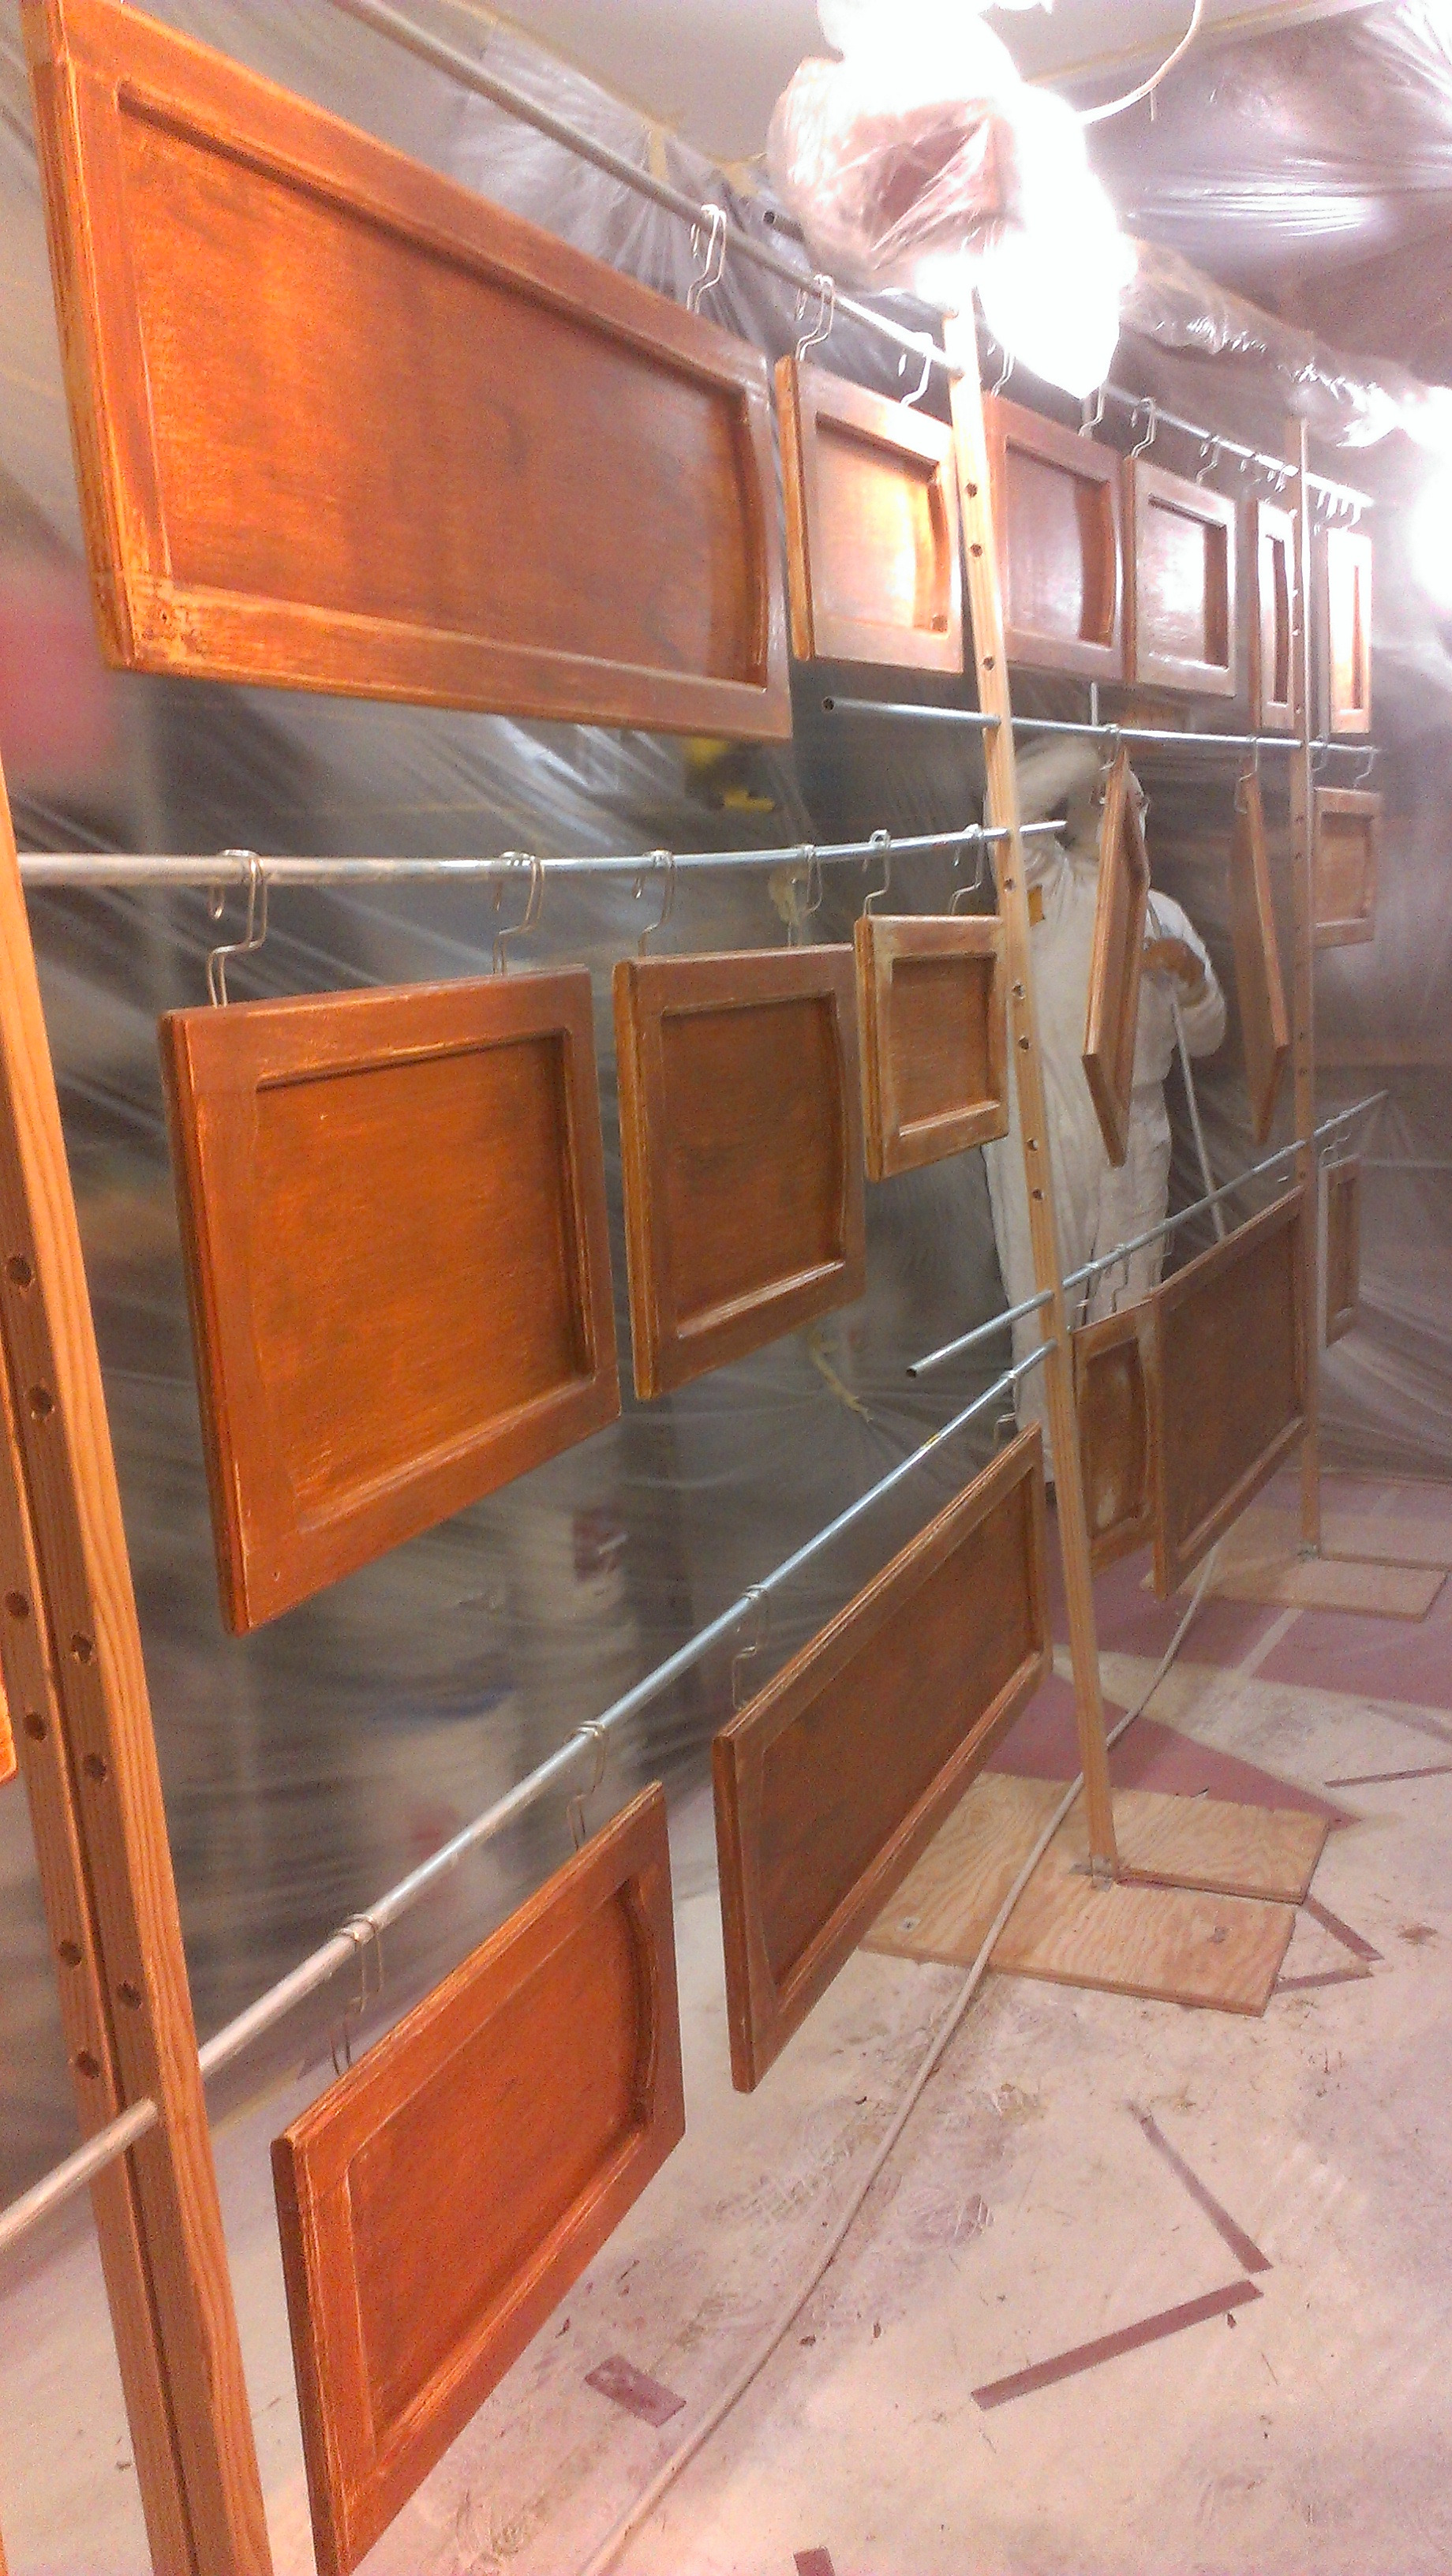 Cabinet Door Refinishing Awesome Cabinet and Trim Painting Experts Paintworx Inc